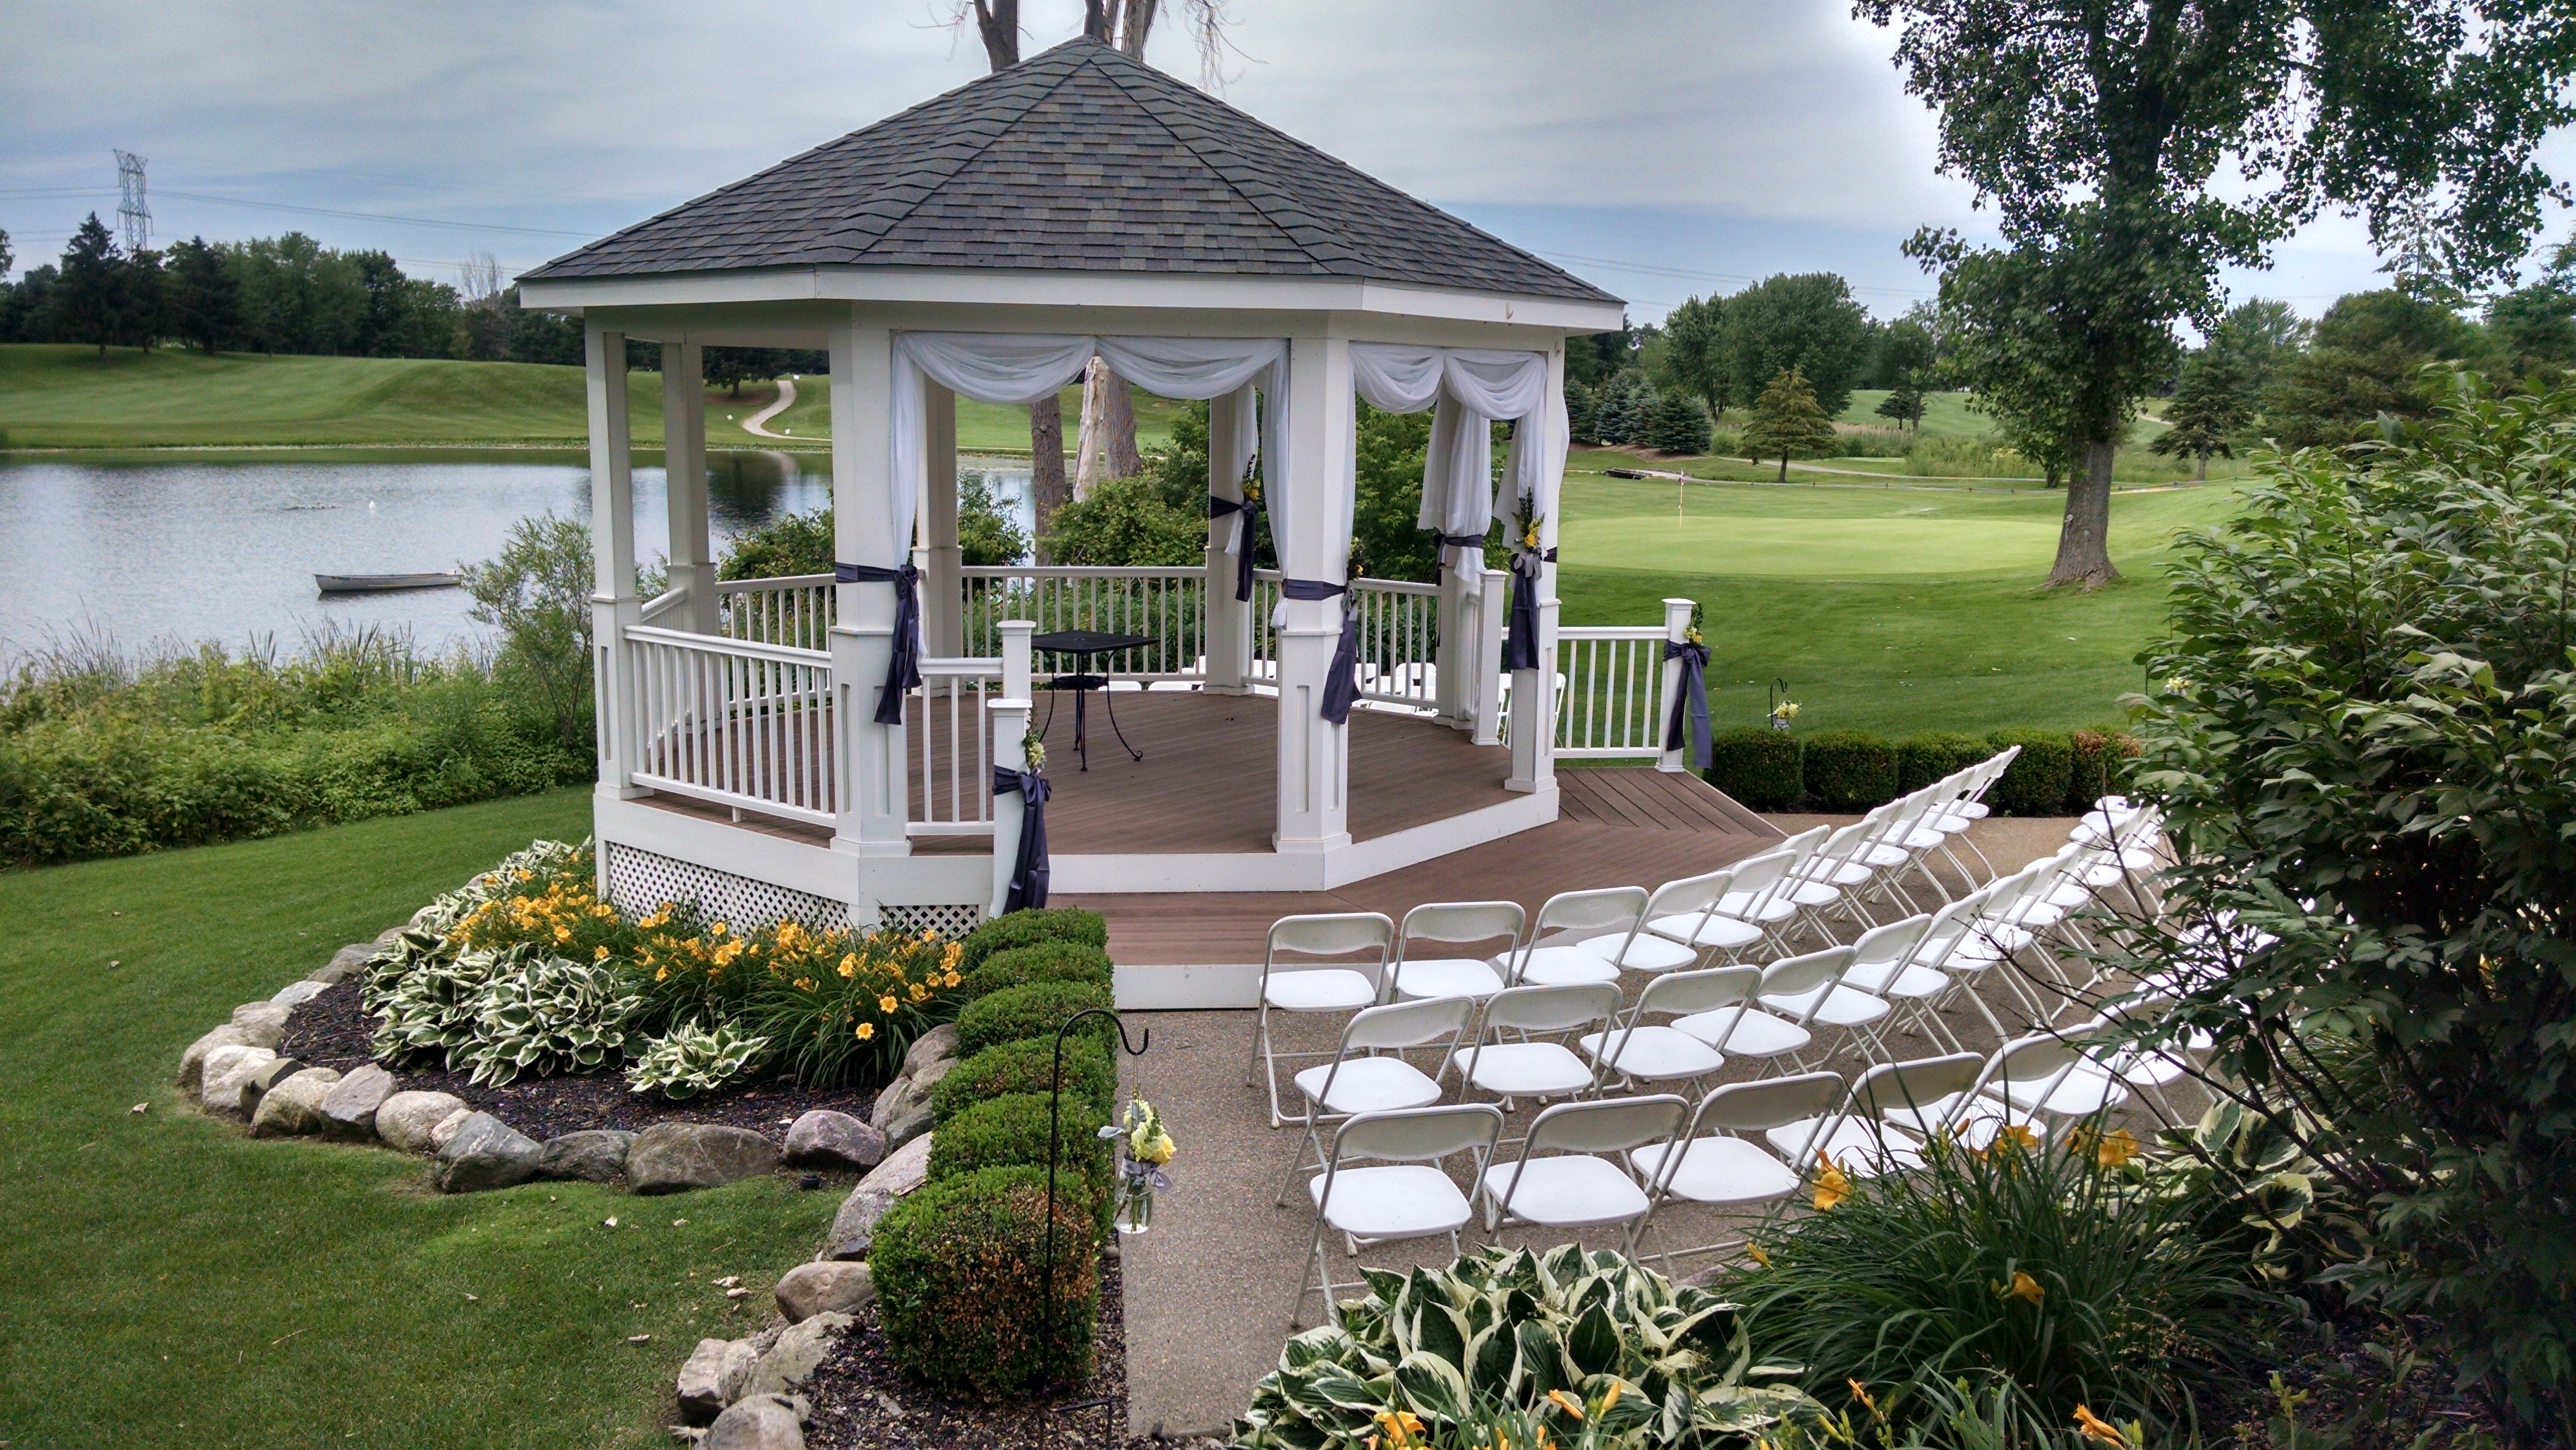 Fountains Golf Banquets Bar Amp Grill In Clarkston Michigan